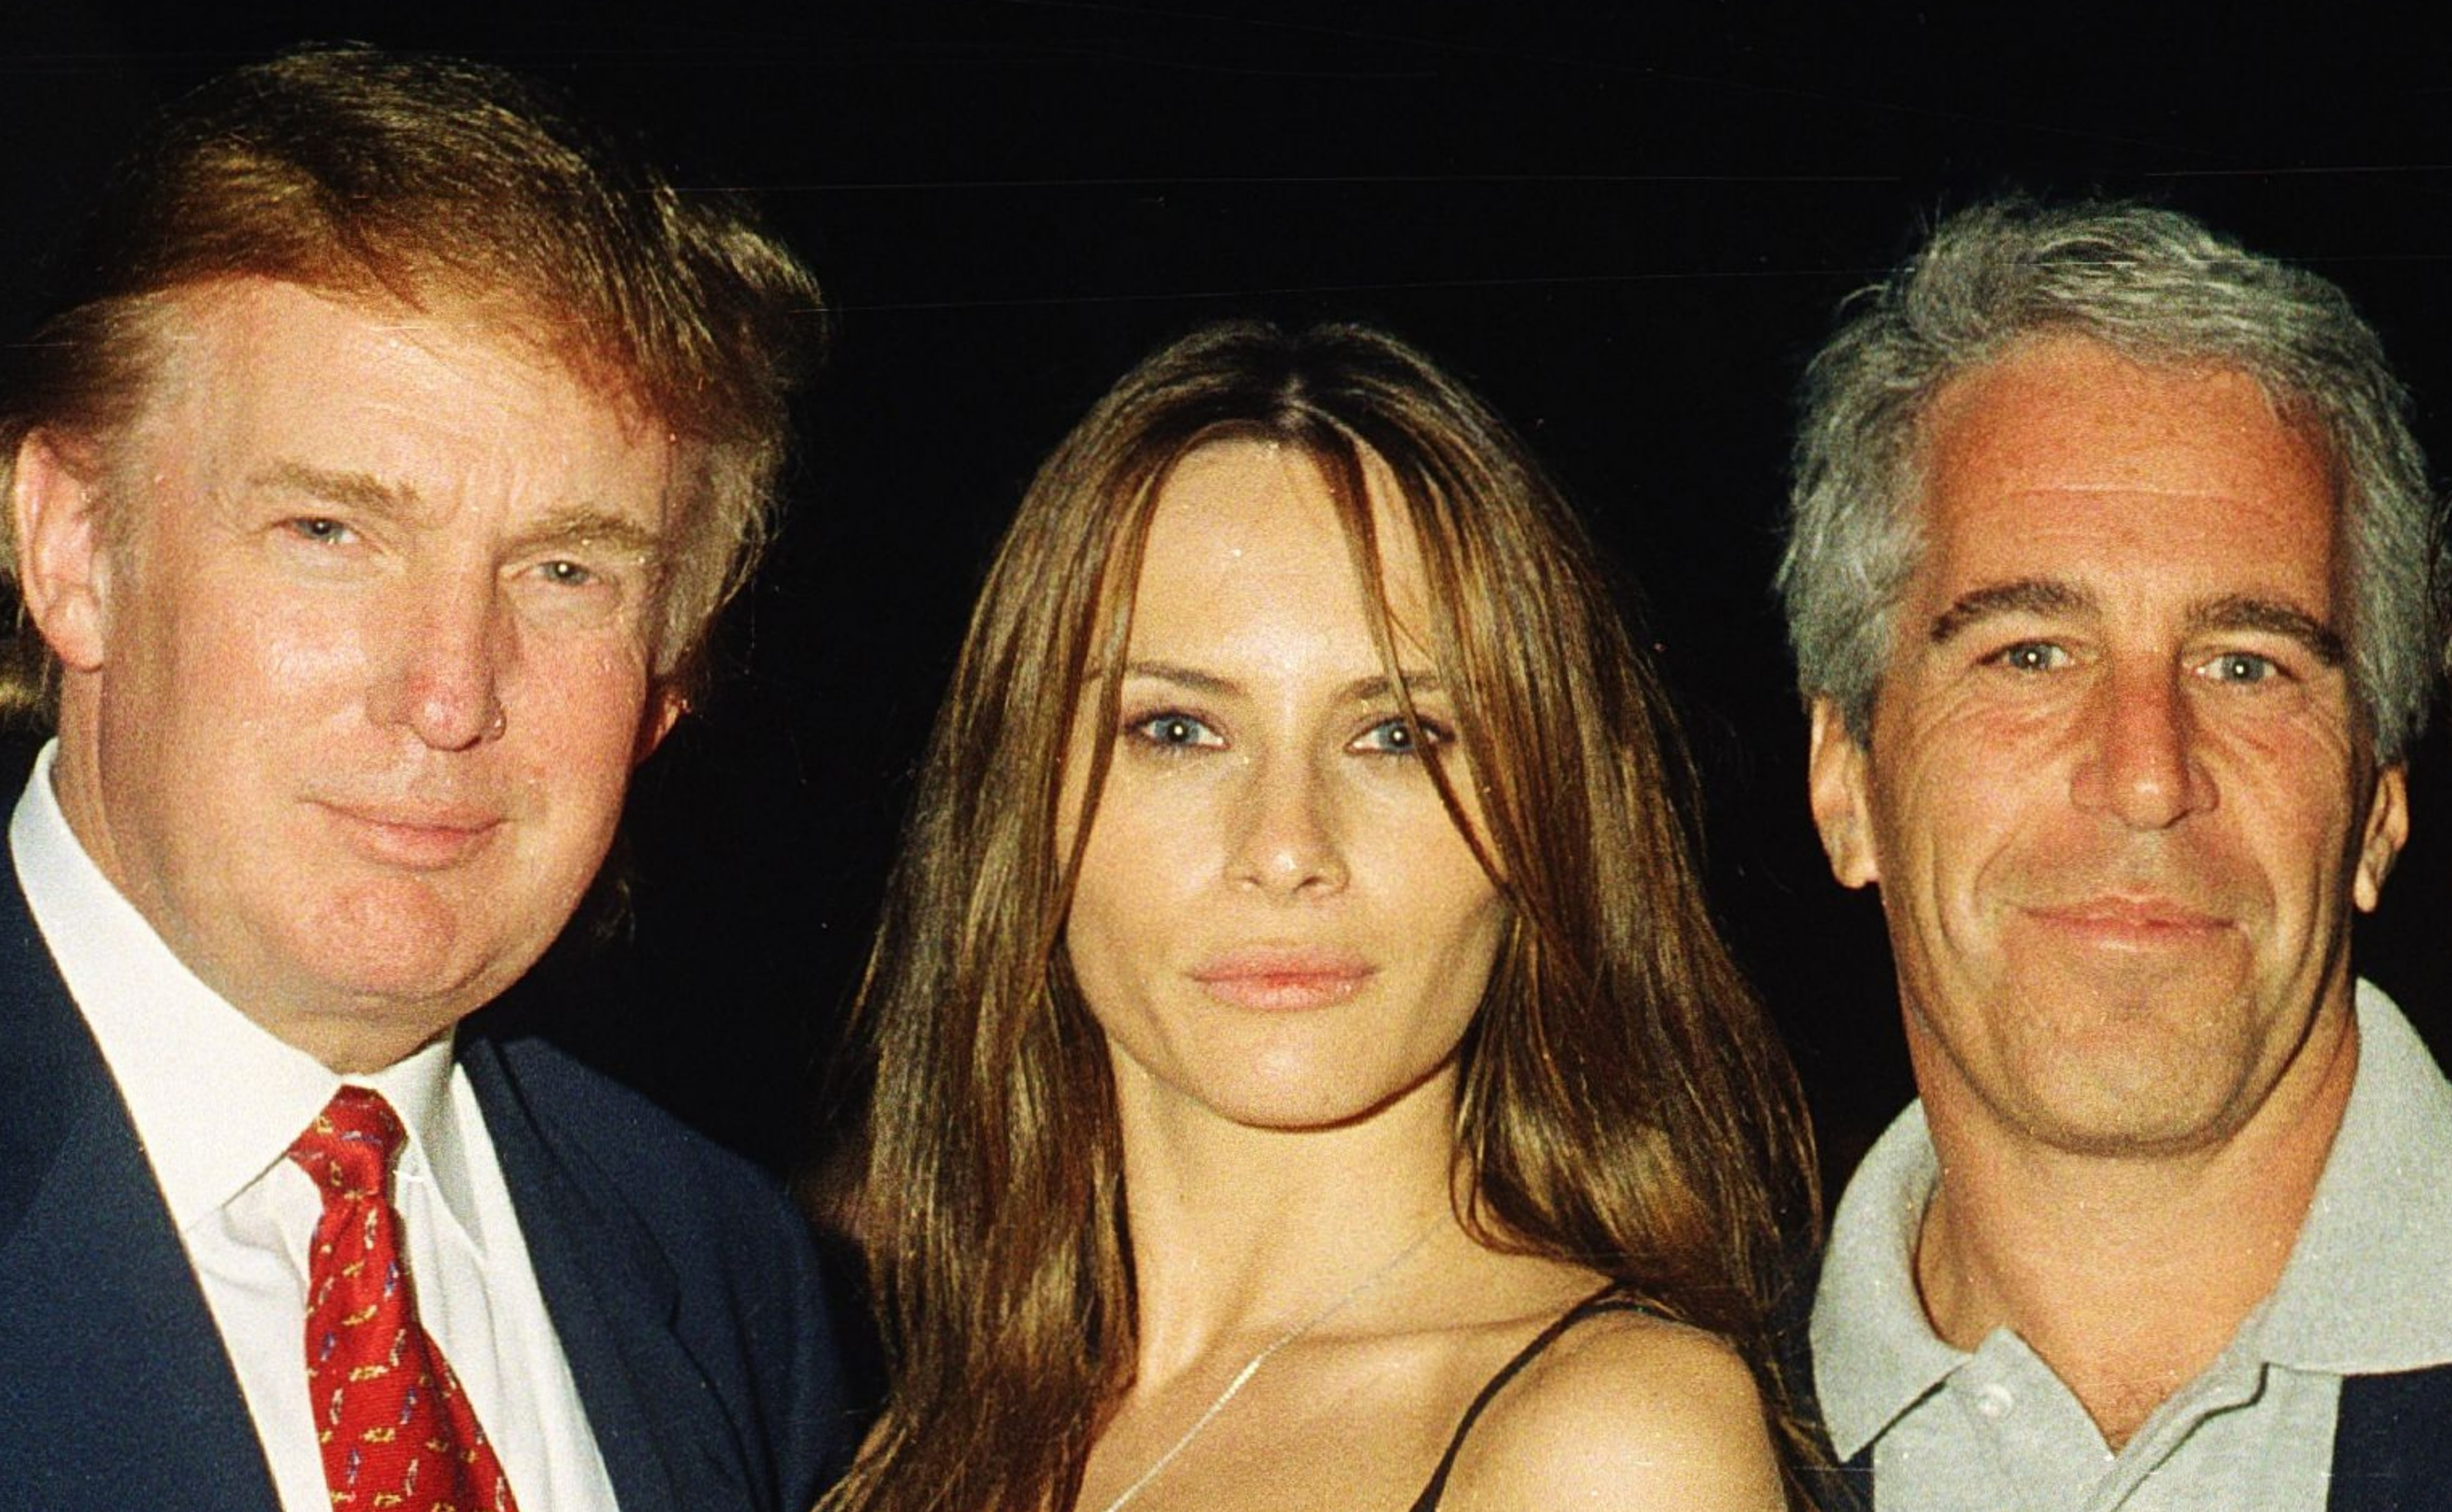 Jeffrey Epstein Told Inmates About Donald Trump and Bill Clinton Before  Death, Book Claims